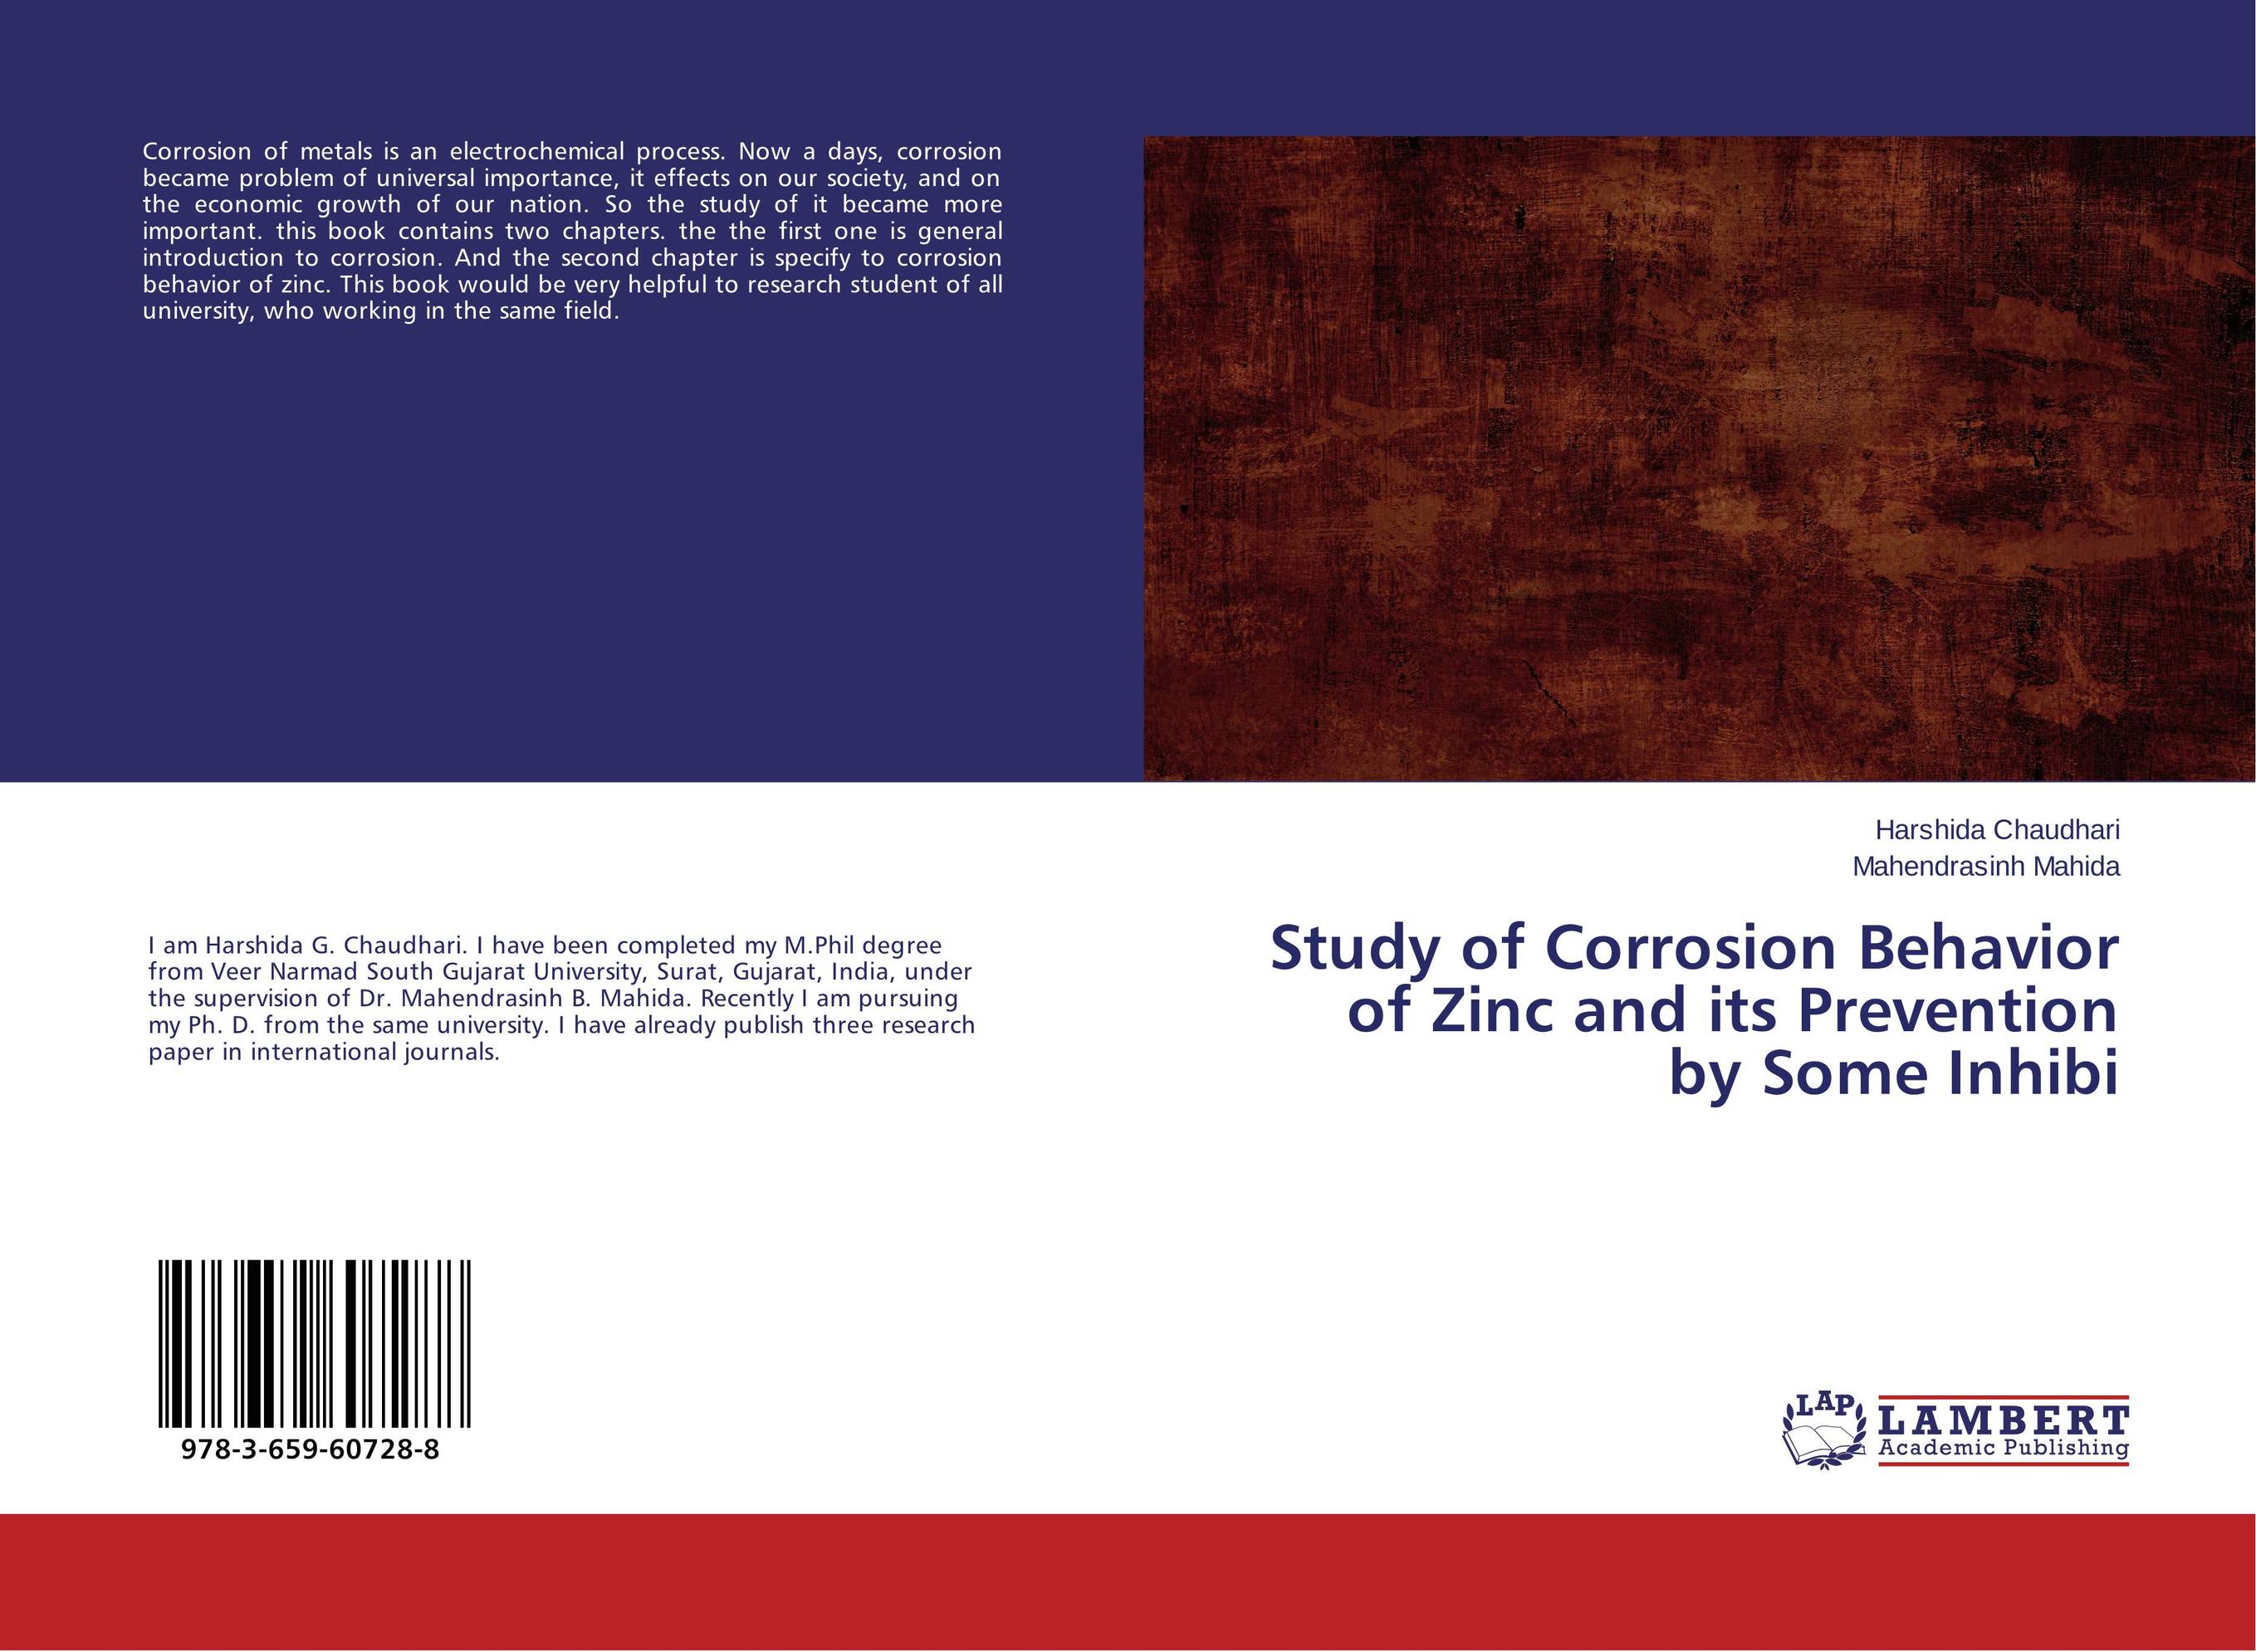 Study of Corrosion Behavior of Zinc and its Prevention by Some Inhibi